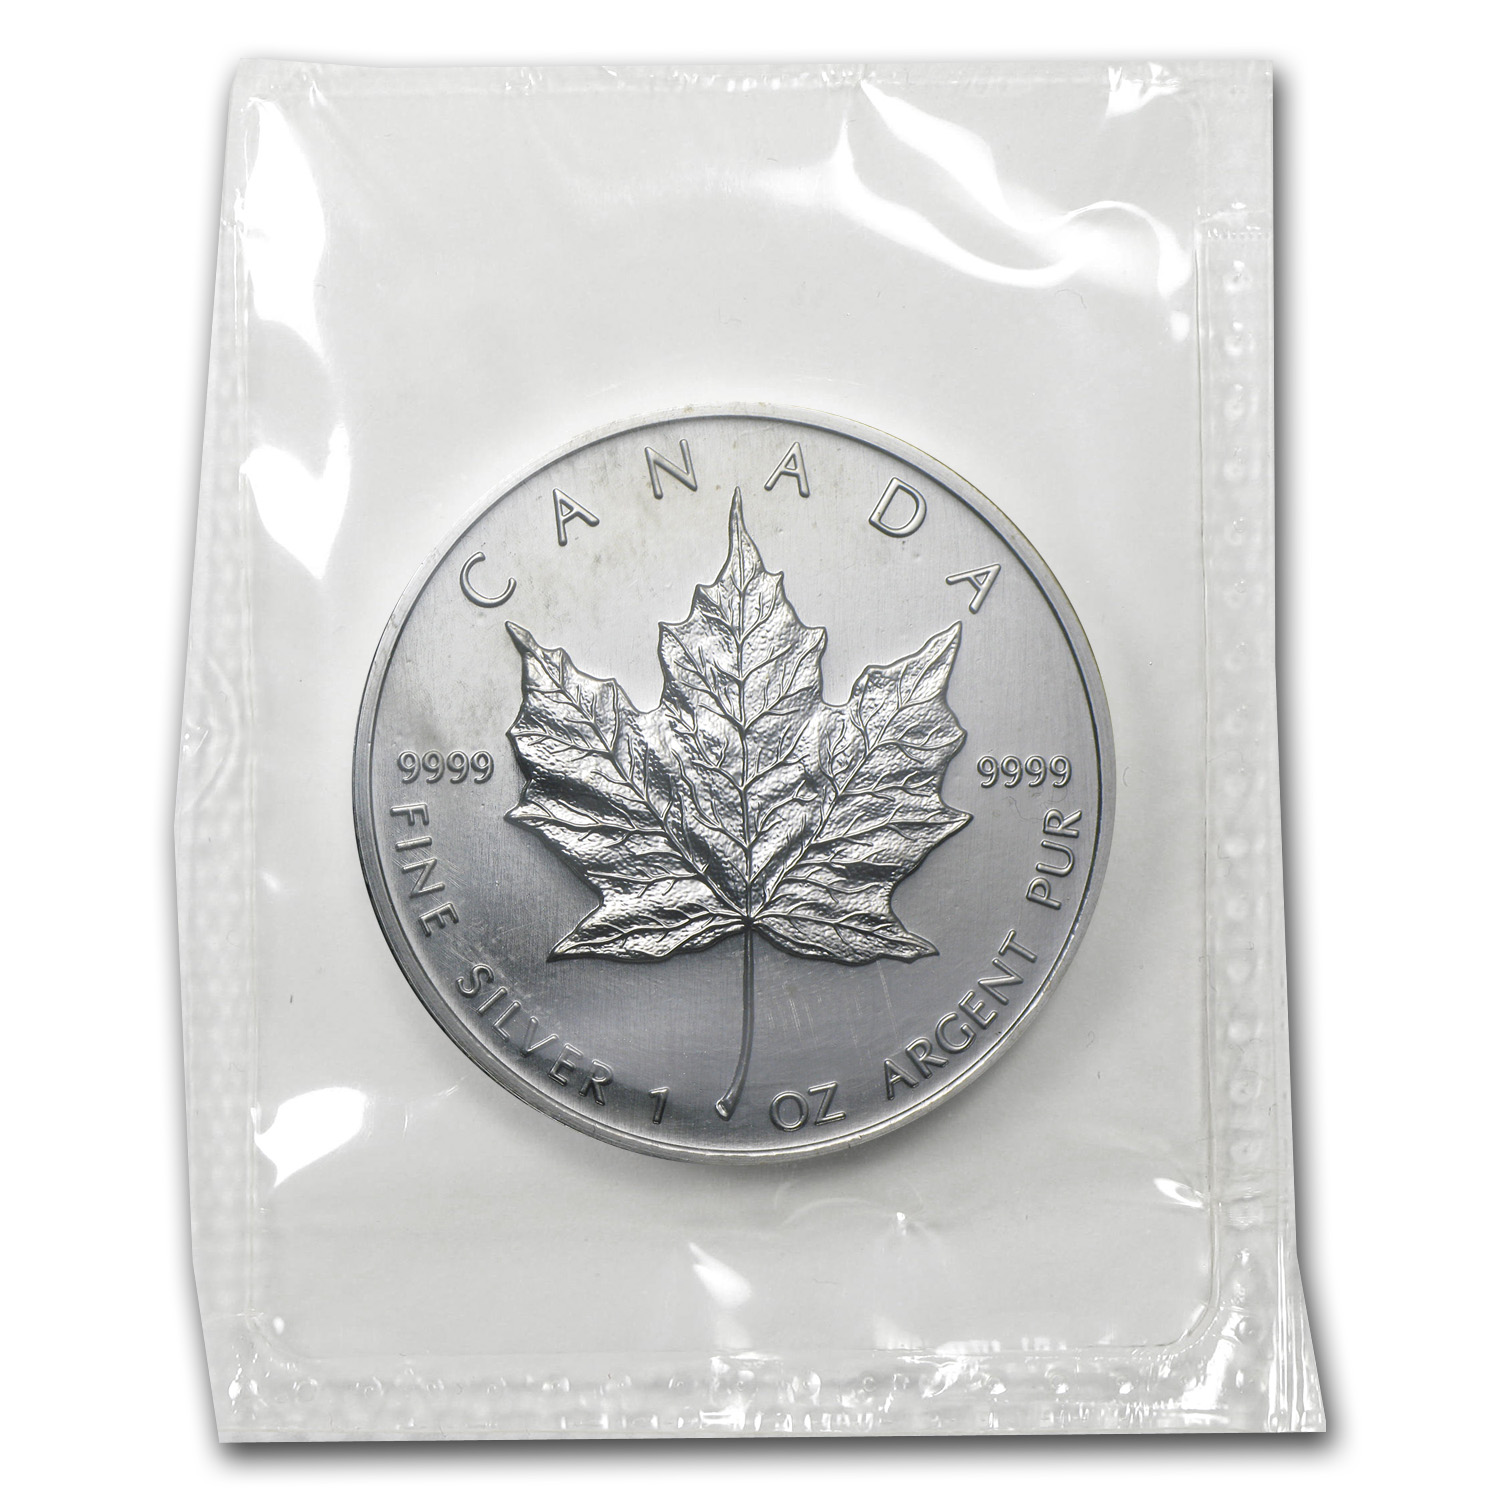 2003 1 oz Silver Canadian Maple Leaf BU